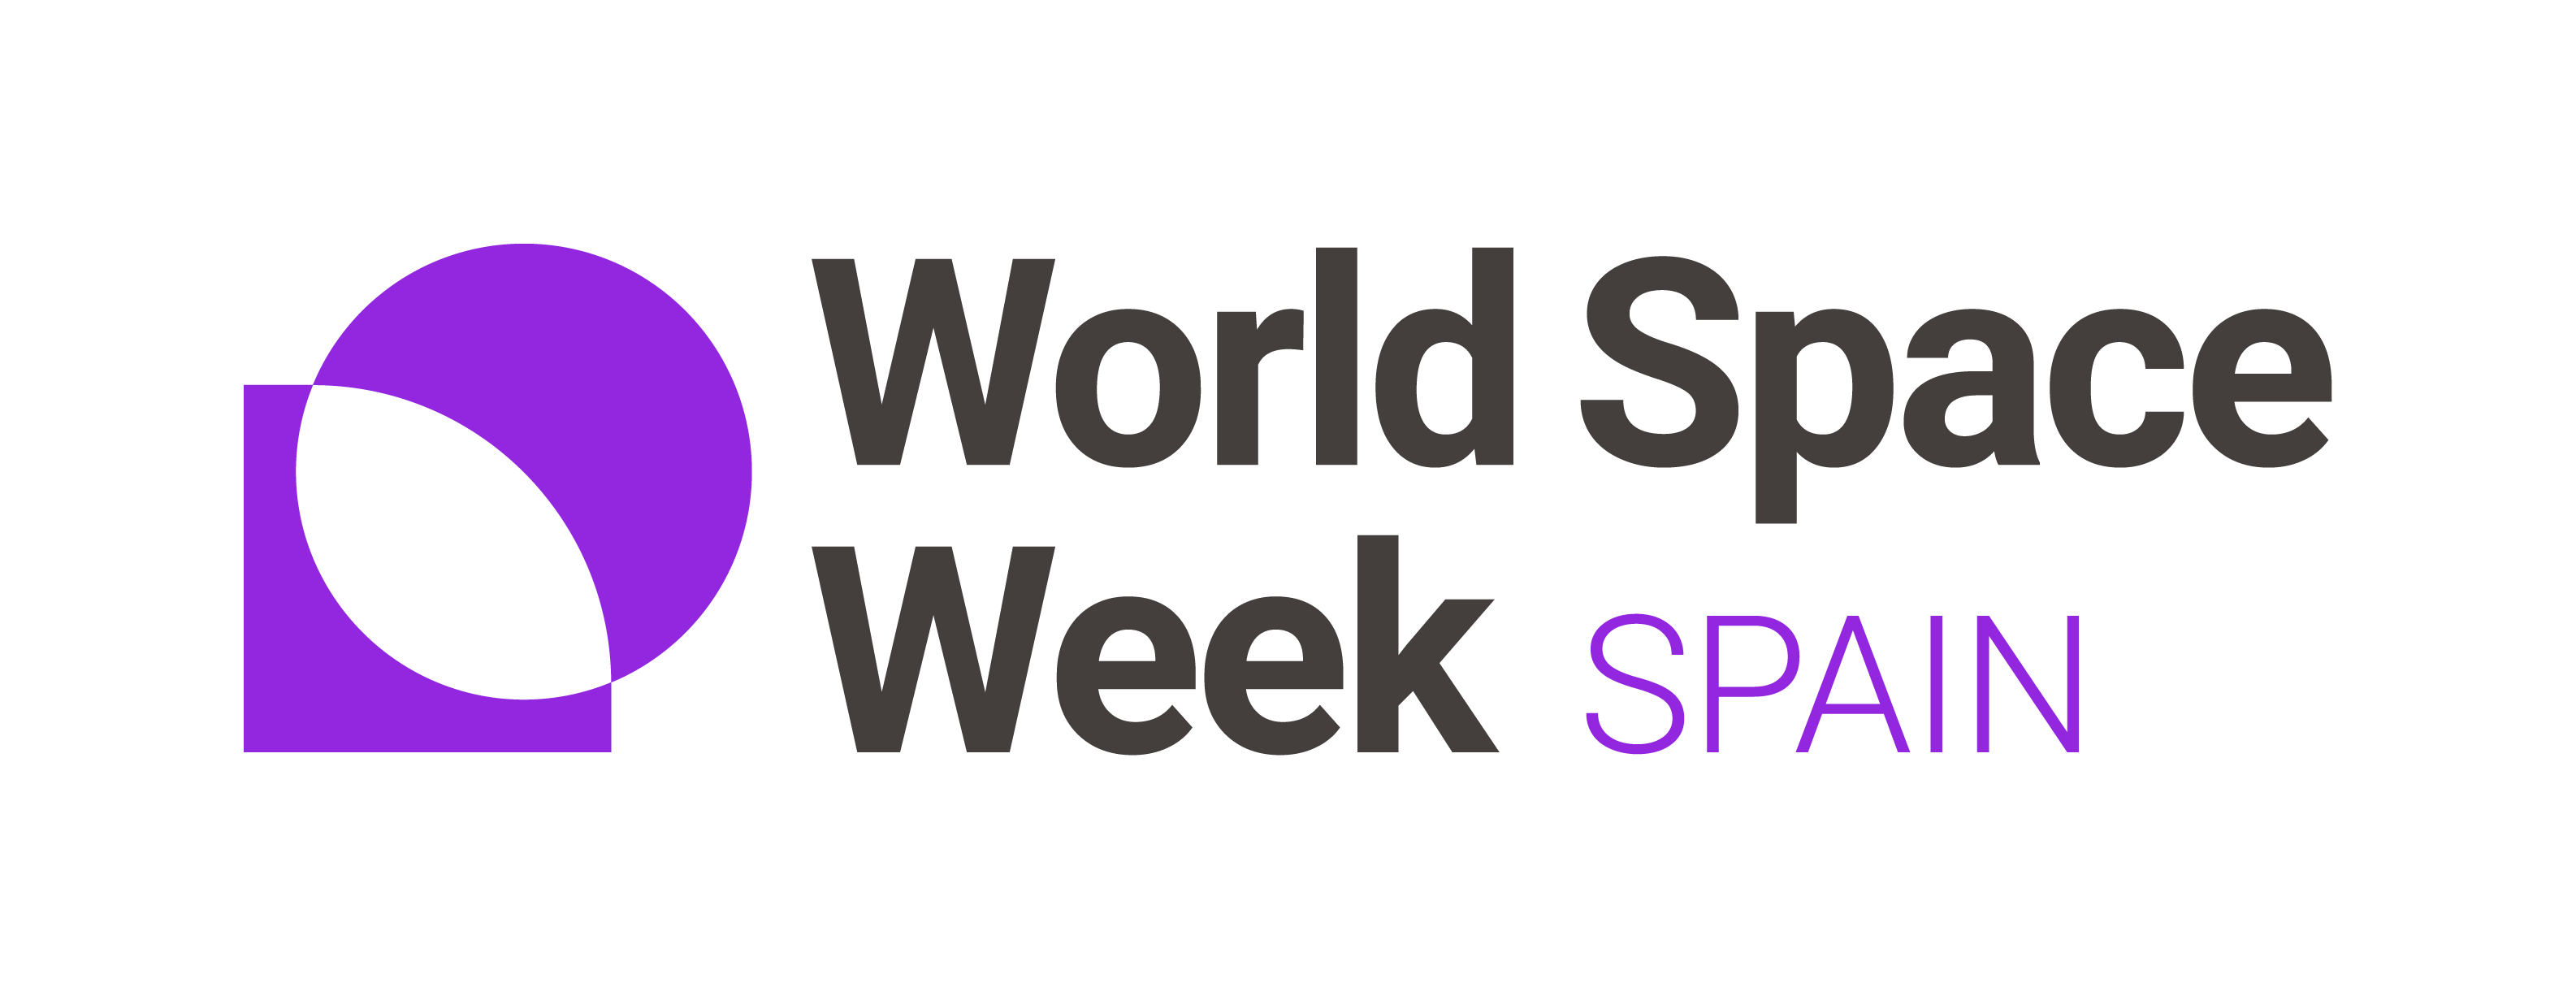 World Space Week Spain